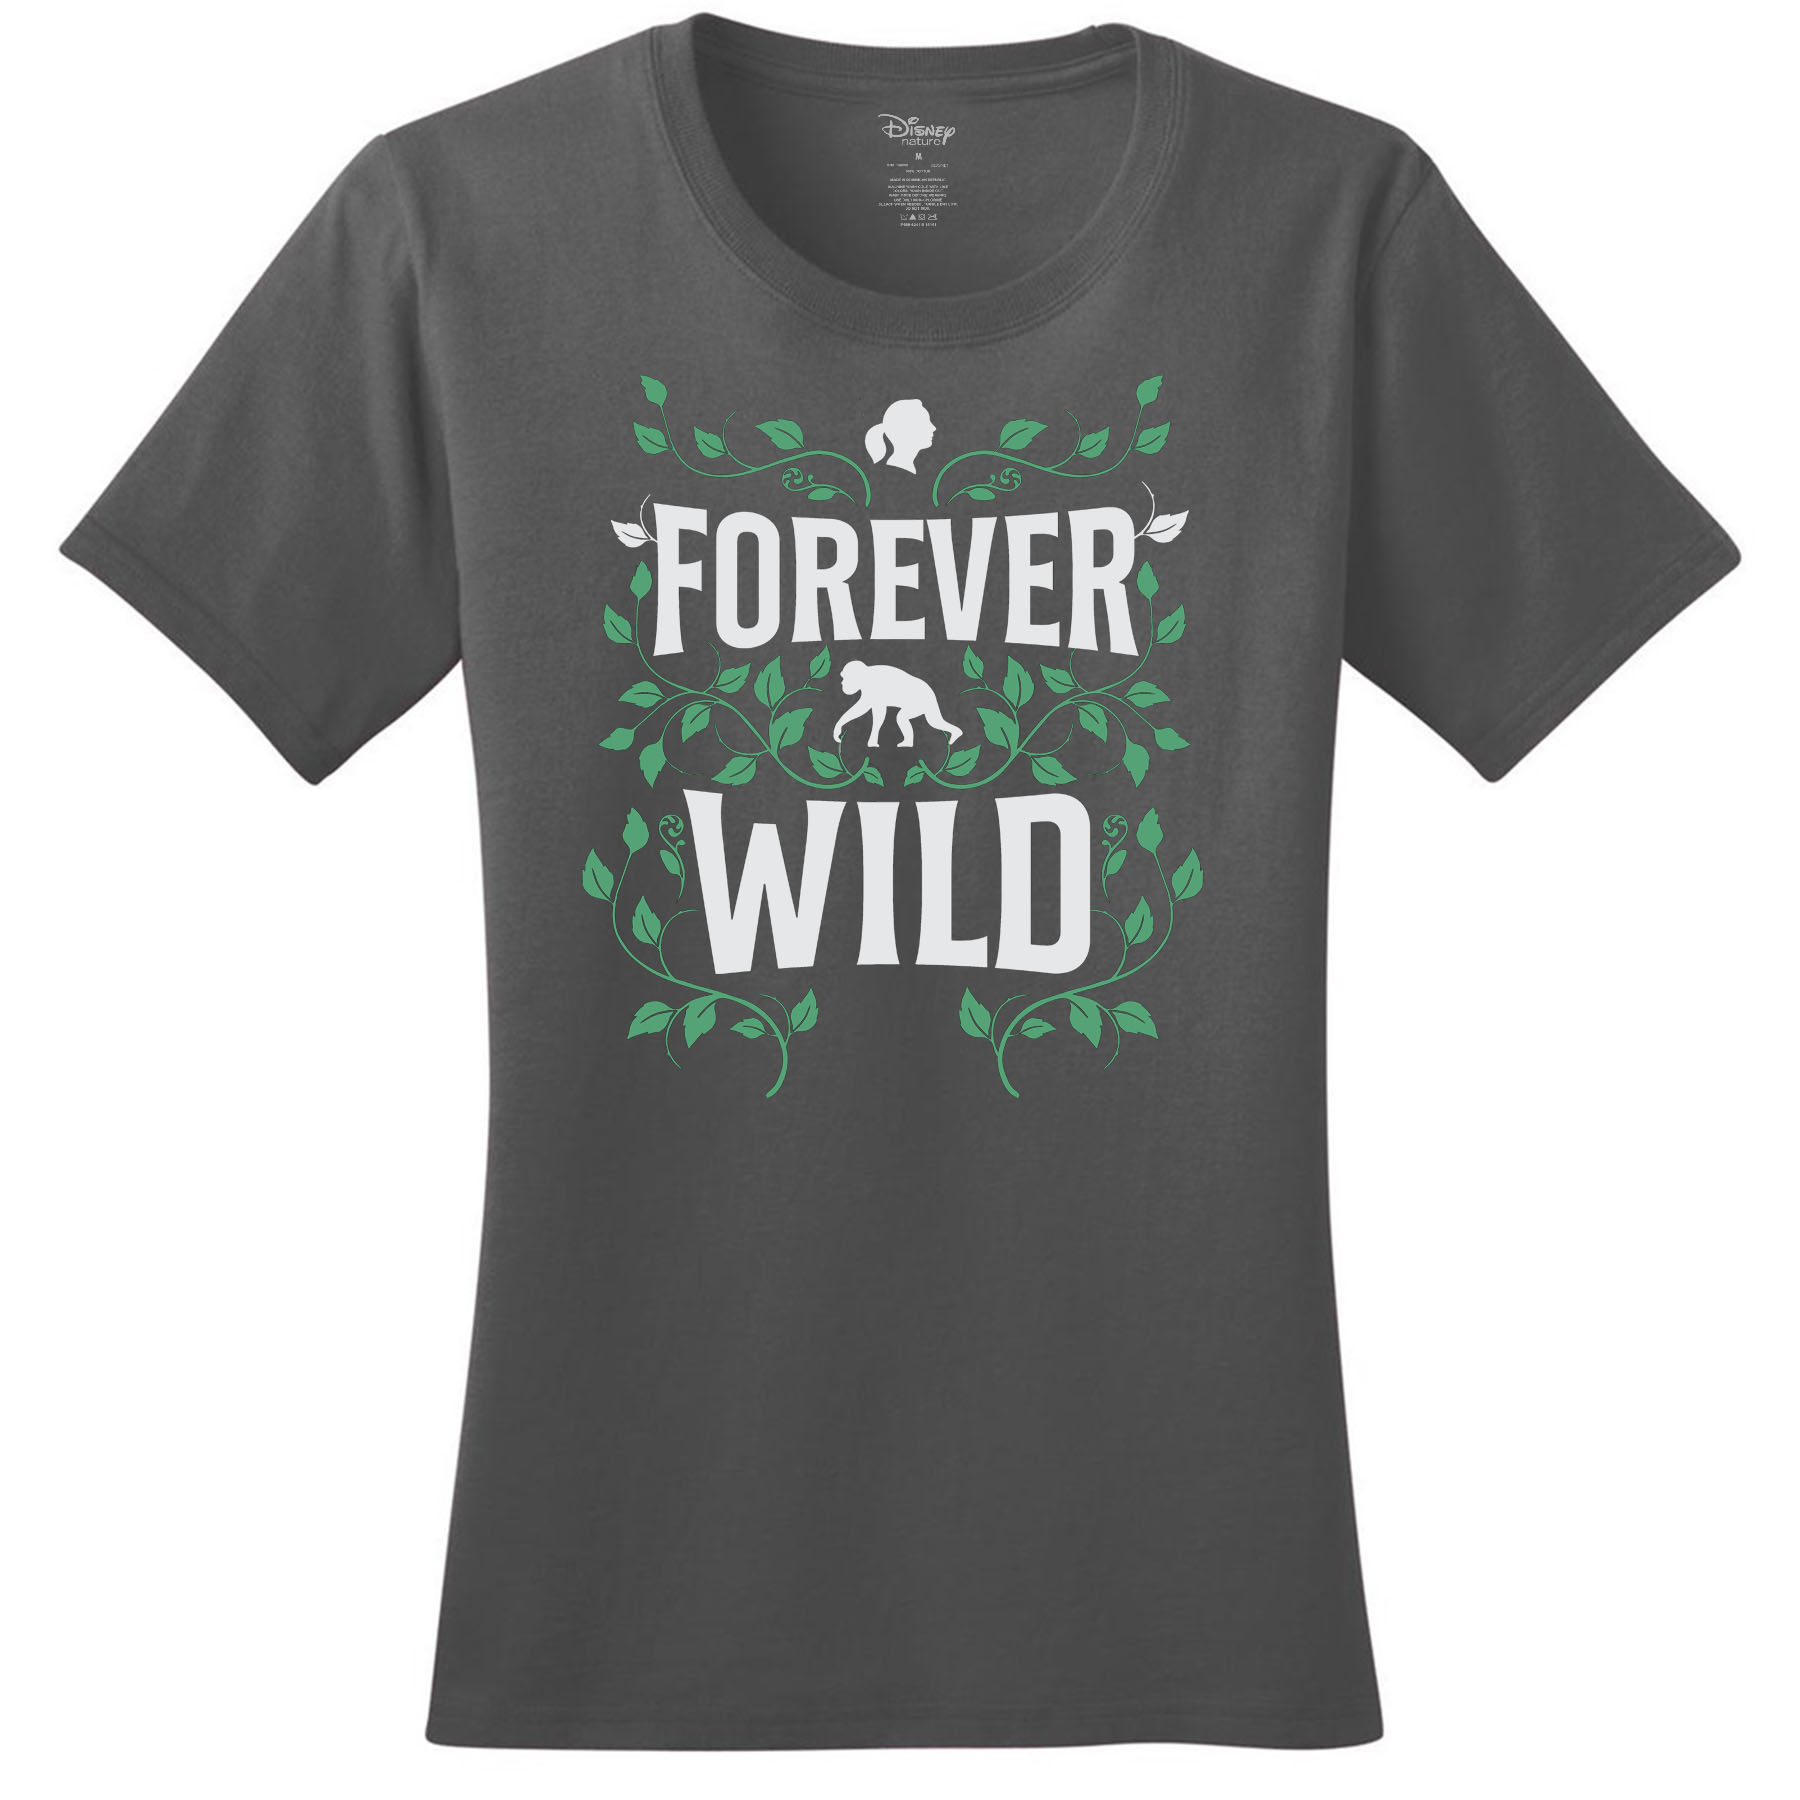 Disneynature + JGI Forever Wild Fitted T-Shirt